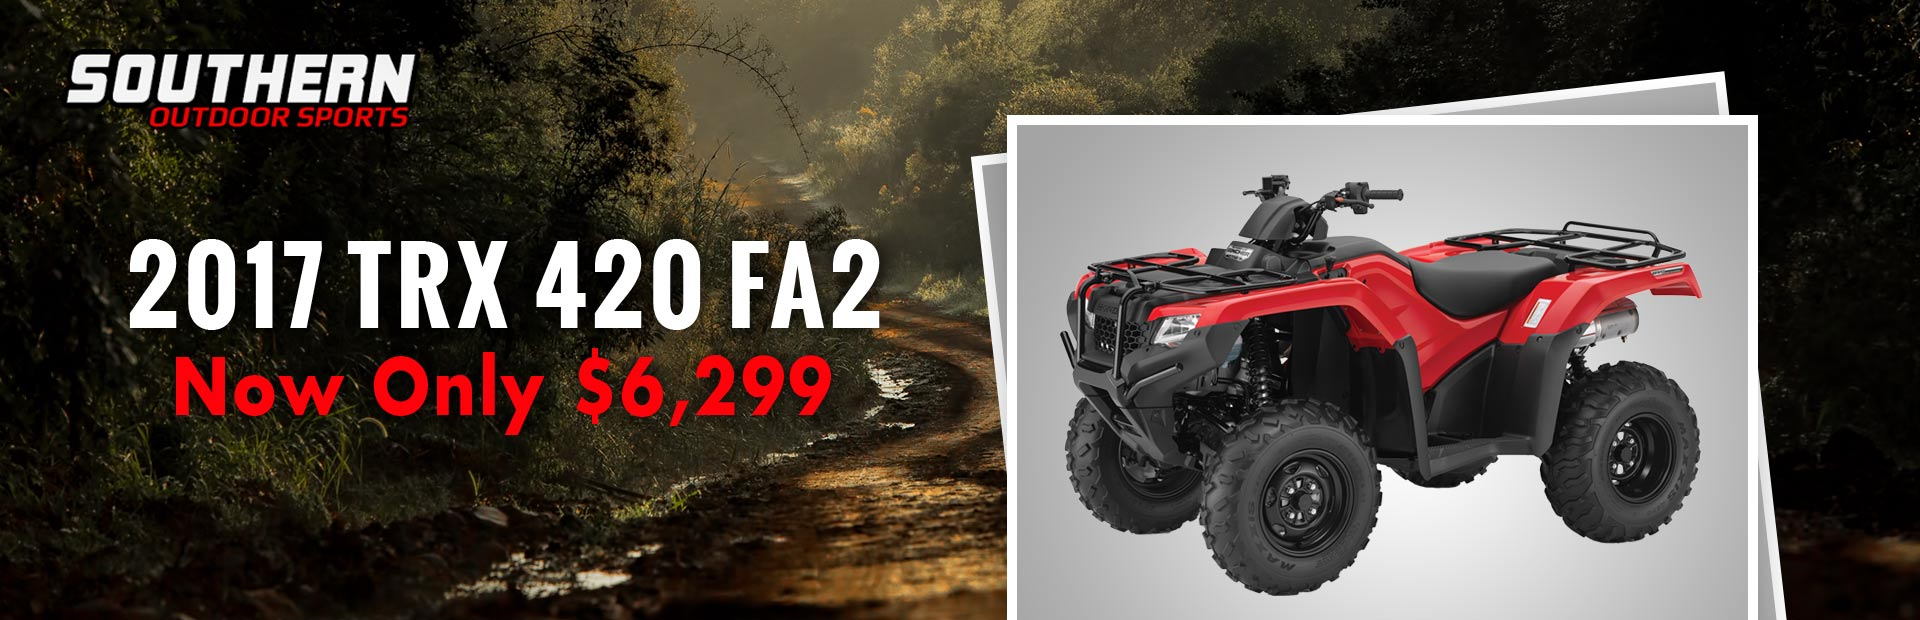 The 2017 Honda TRX 420 FA2 is now only $6,299!